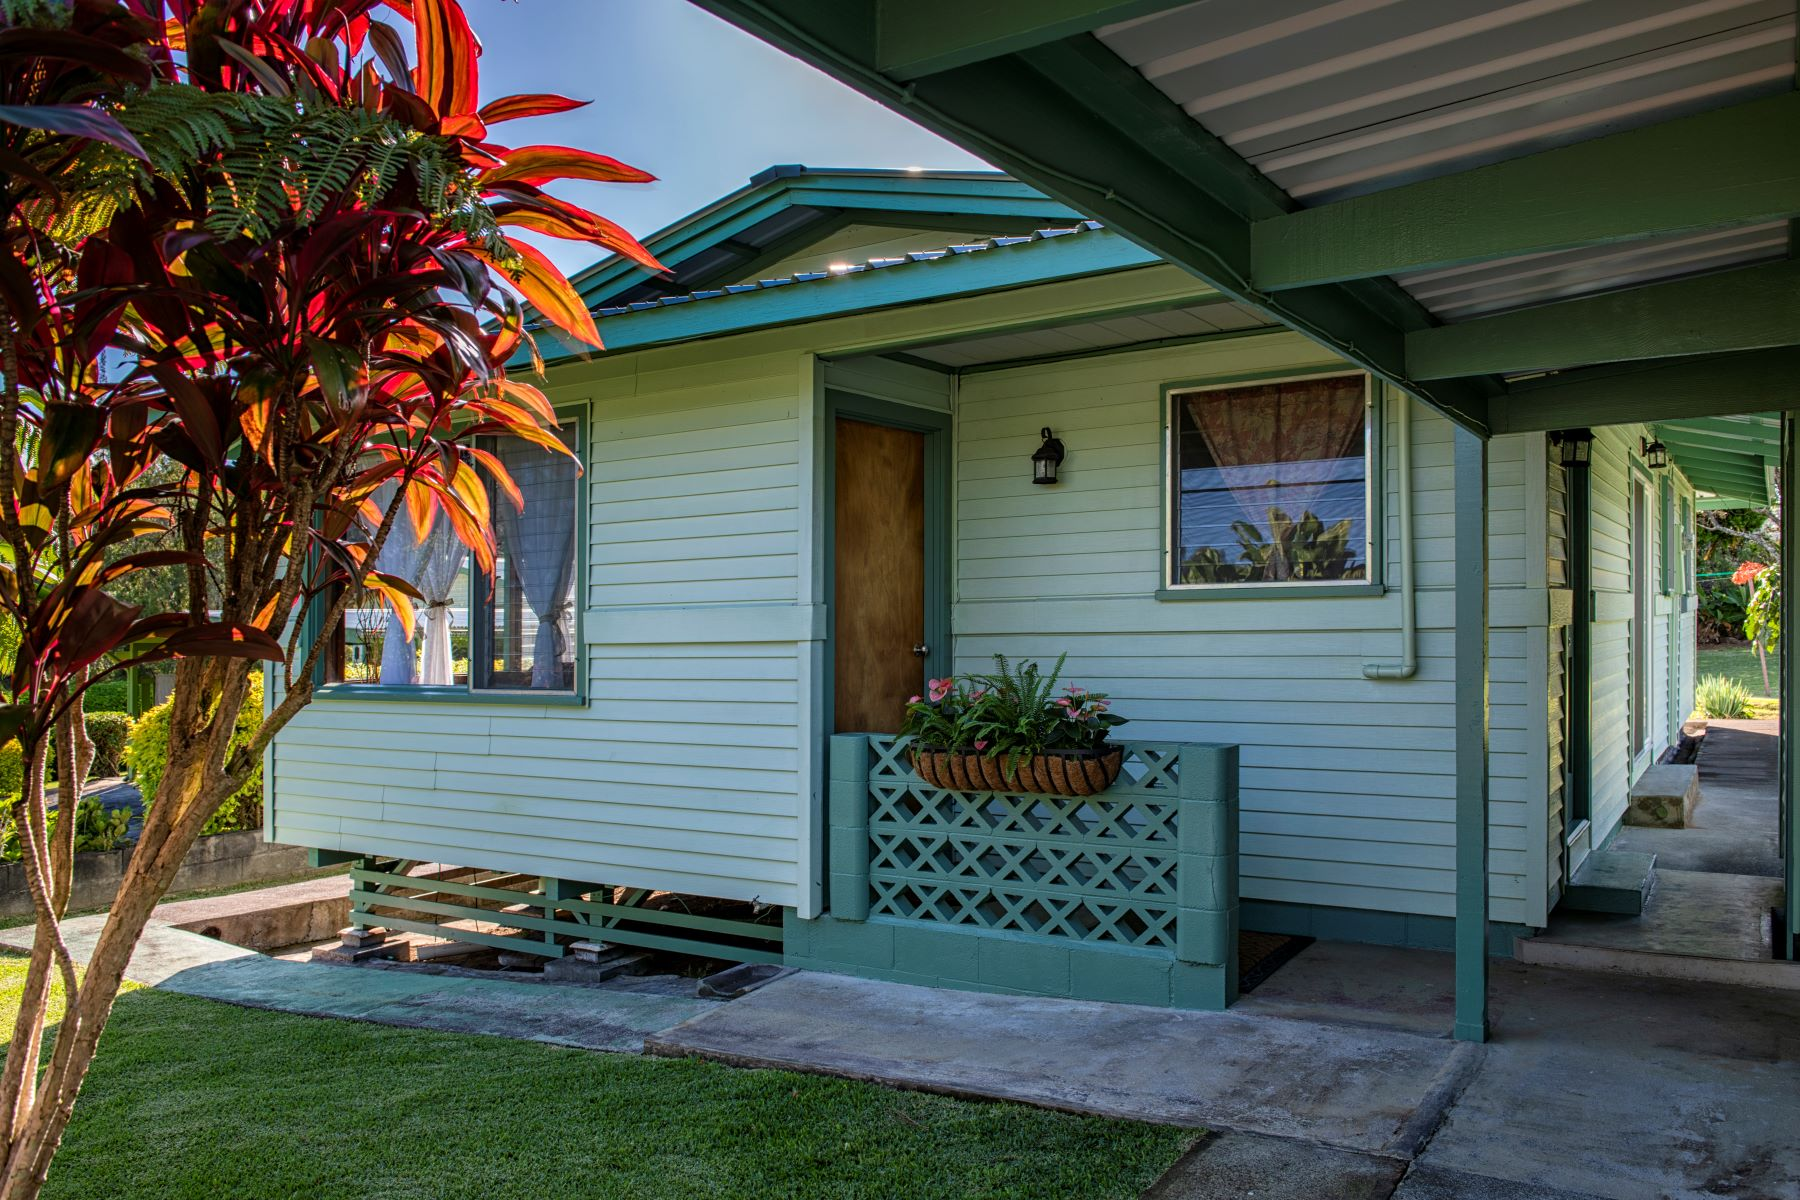 Single Family Homes for Sale at 45-3233 Mamane Street, Honokaa, HI 96727 45-3233 Mamane Street Honokaa, Hawaii 96727 United States